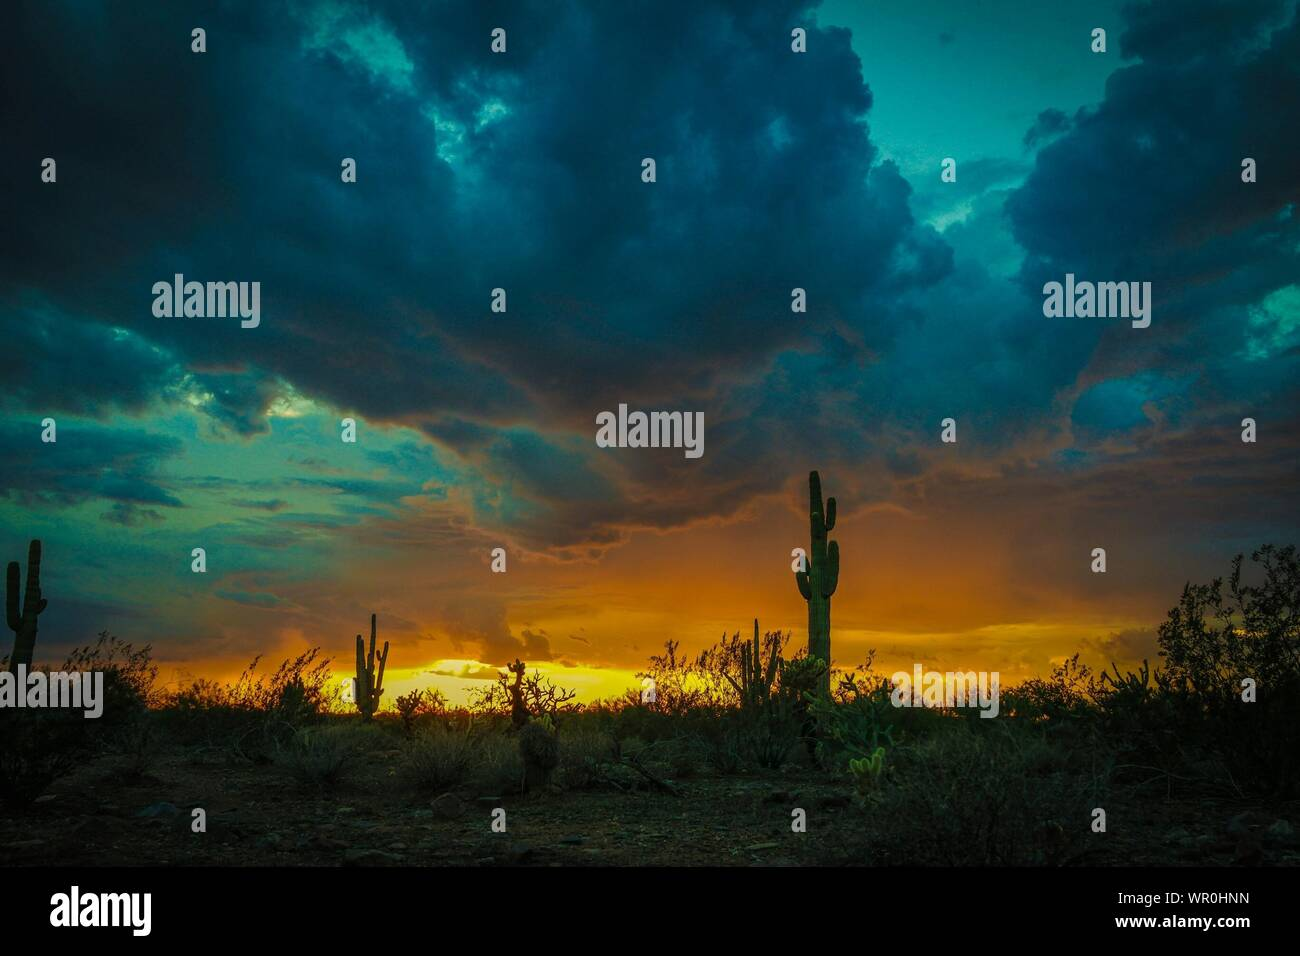 Cactus Plants Growing In Desert Against Cloudy Sky During Sunset Stock Photo